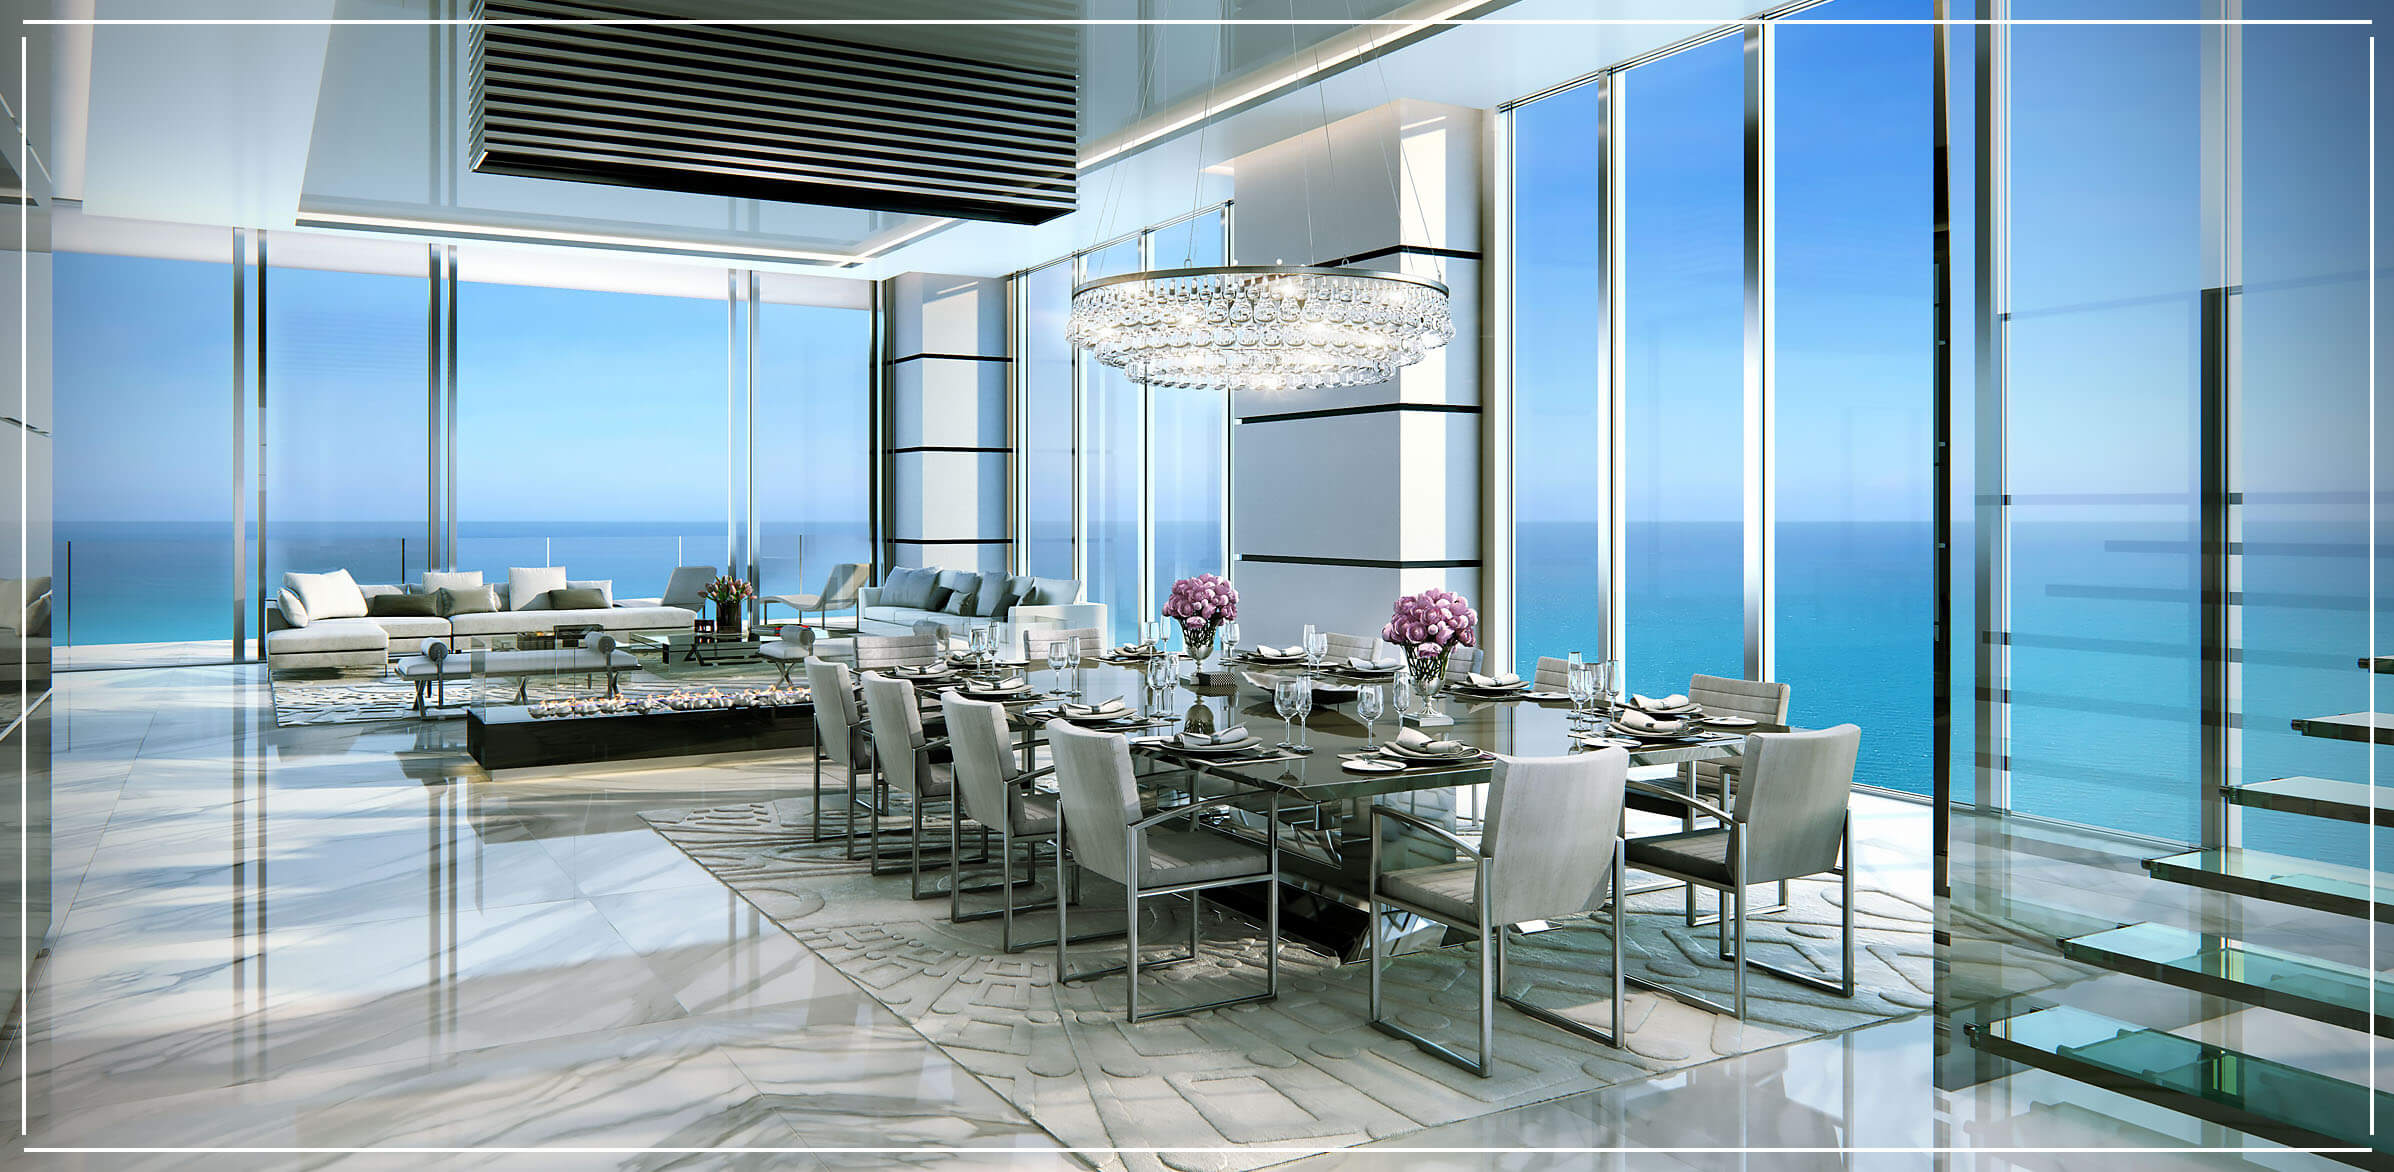 Turnberry Ocean Club Penthouses for Sale in Sunny Isles Beach